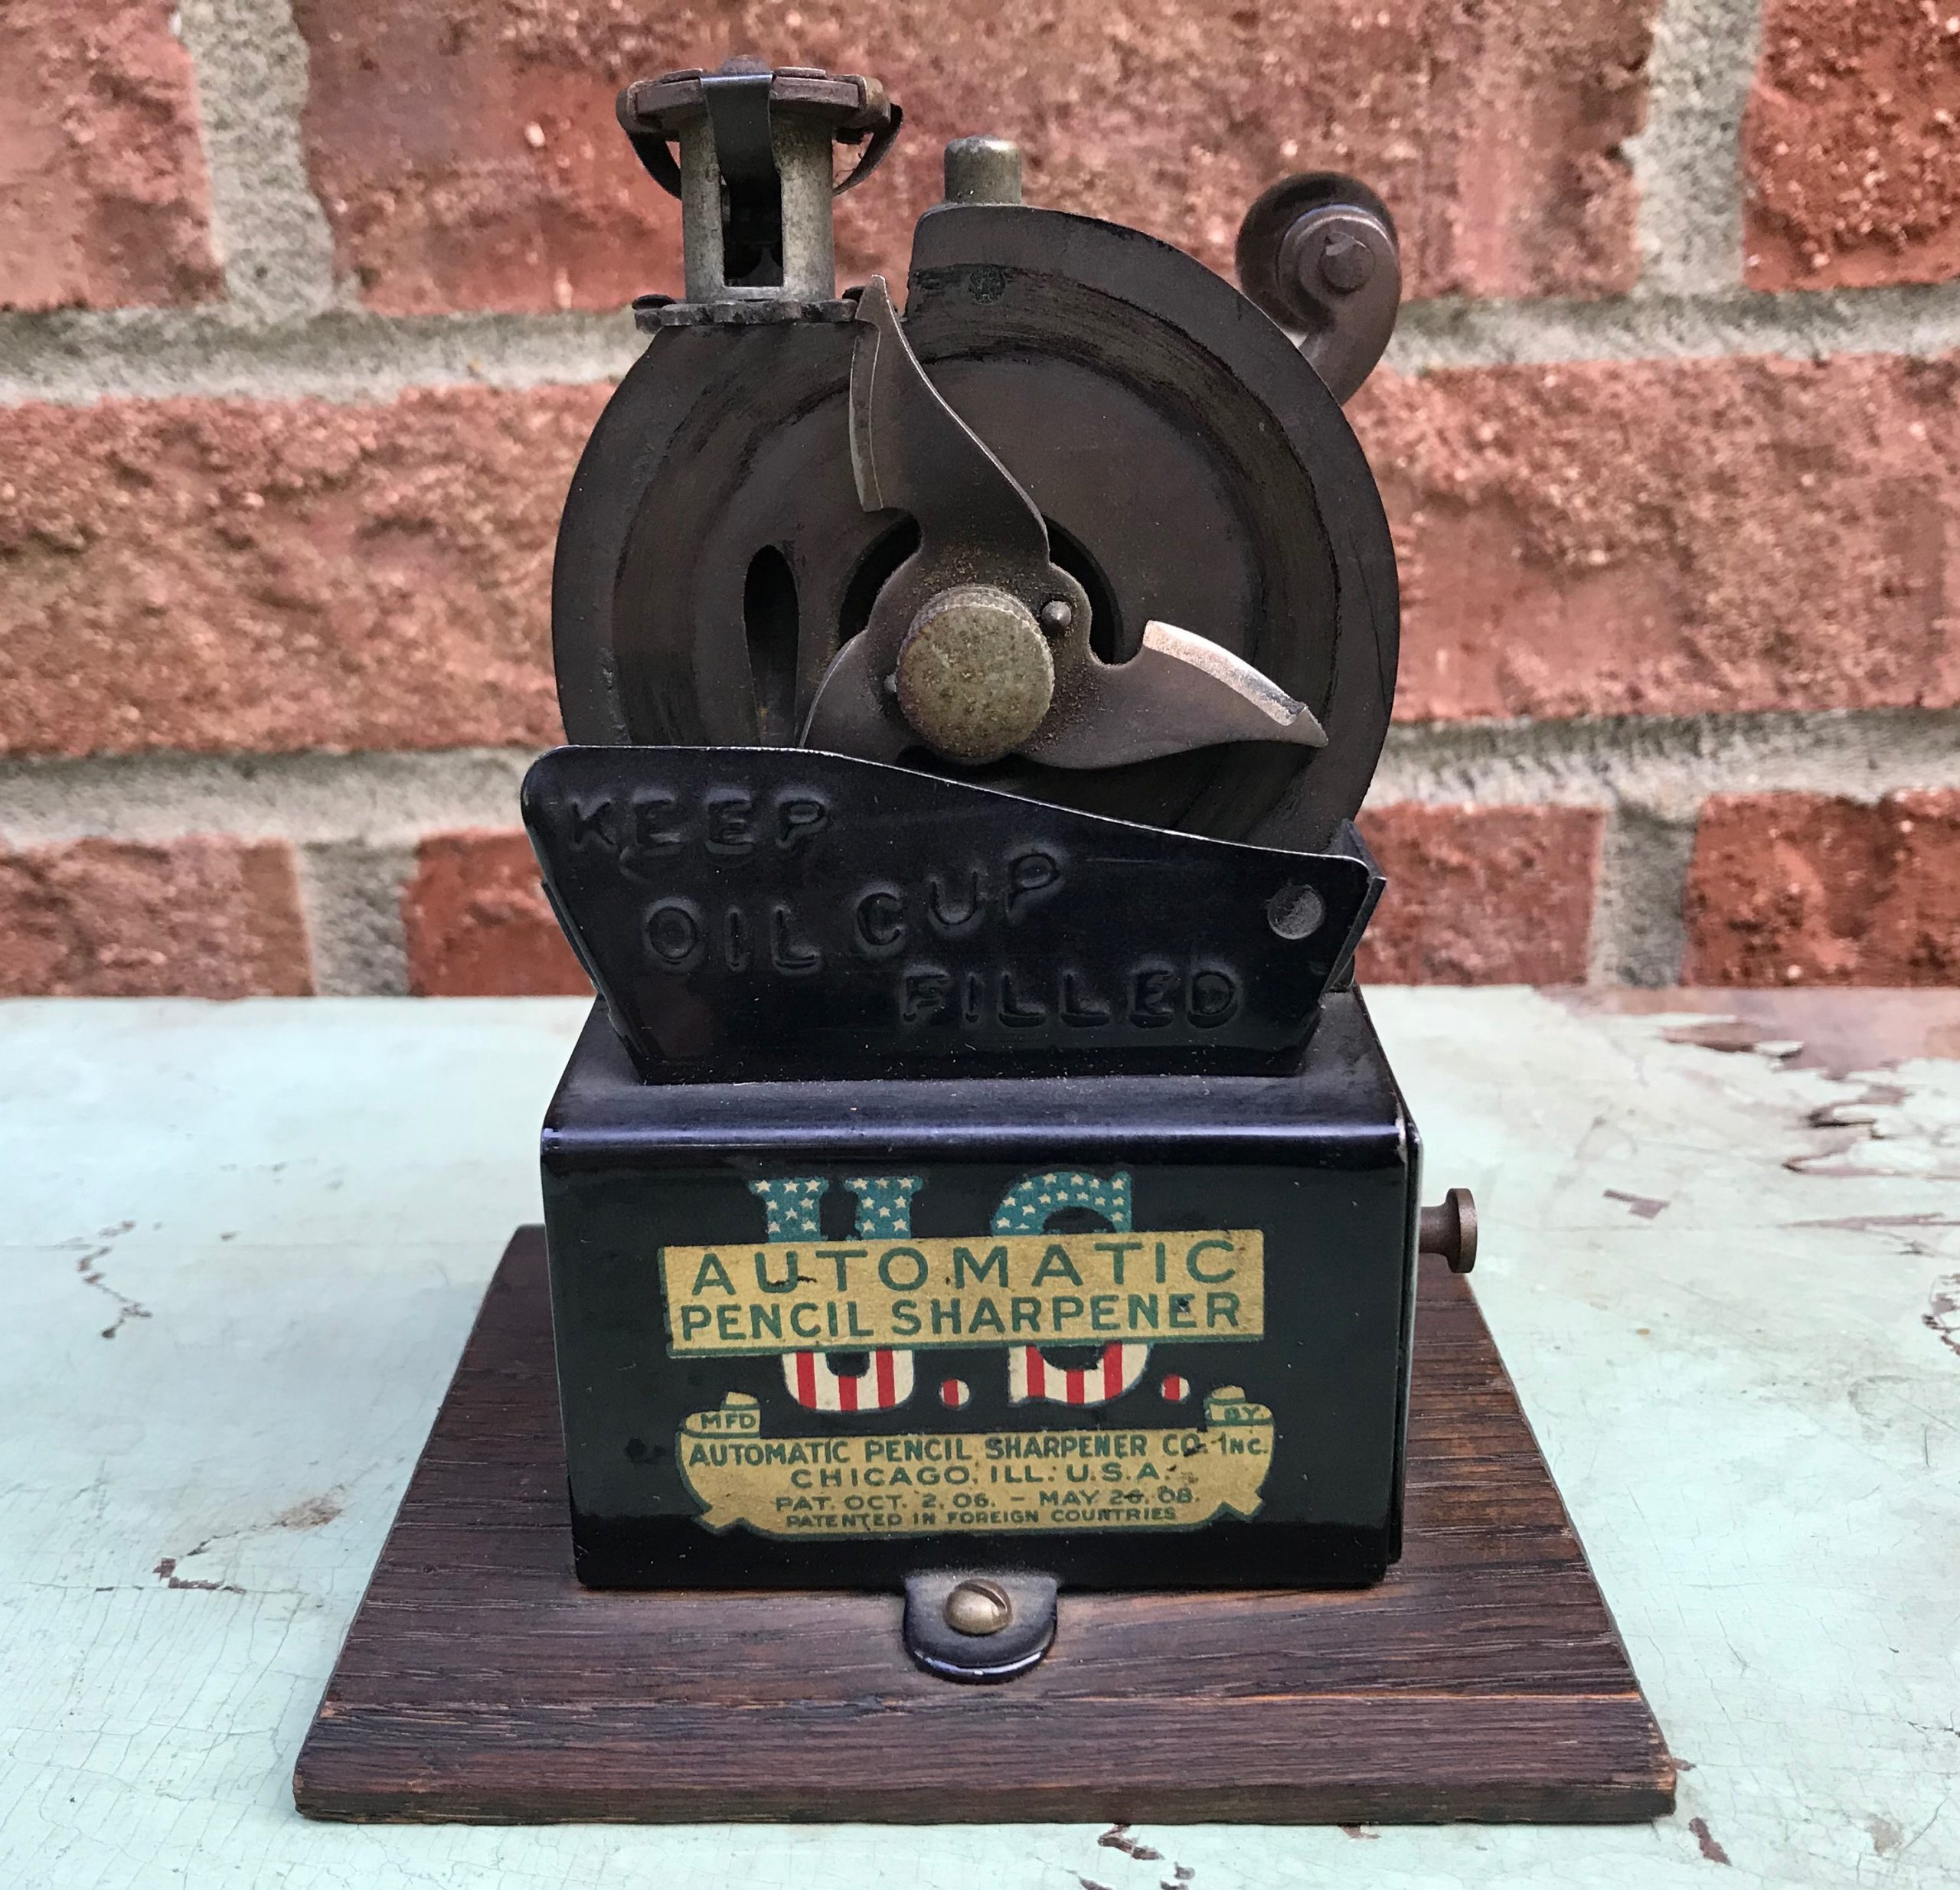 U.S. Automatic Pencil Sharpener by APSCO, c. 1911